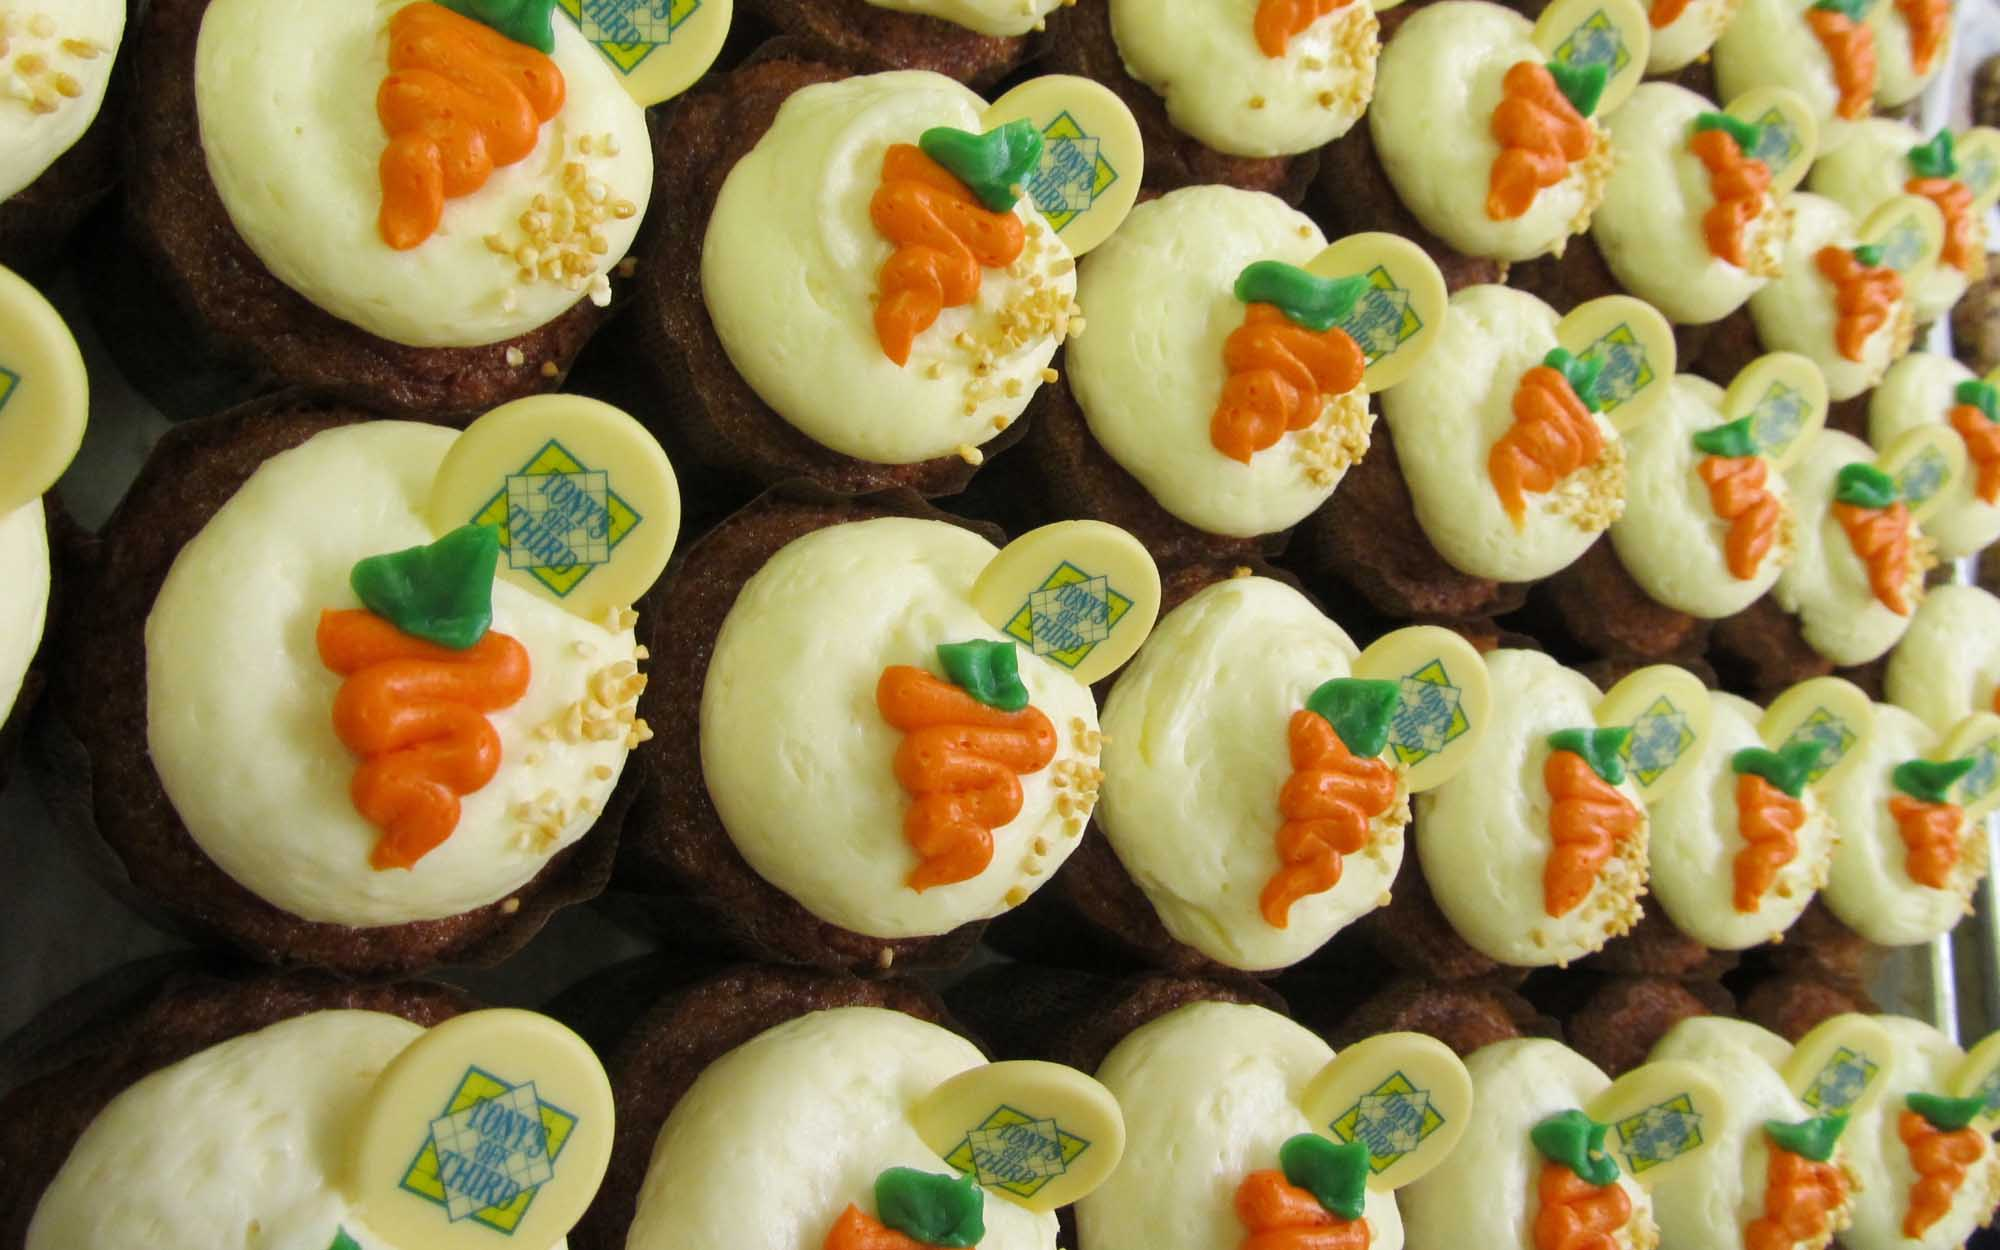 Tray of Carrot Cake Cupcakes at Tony's Off Third